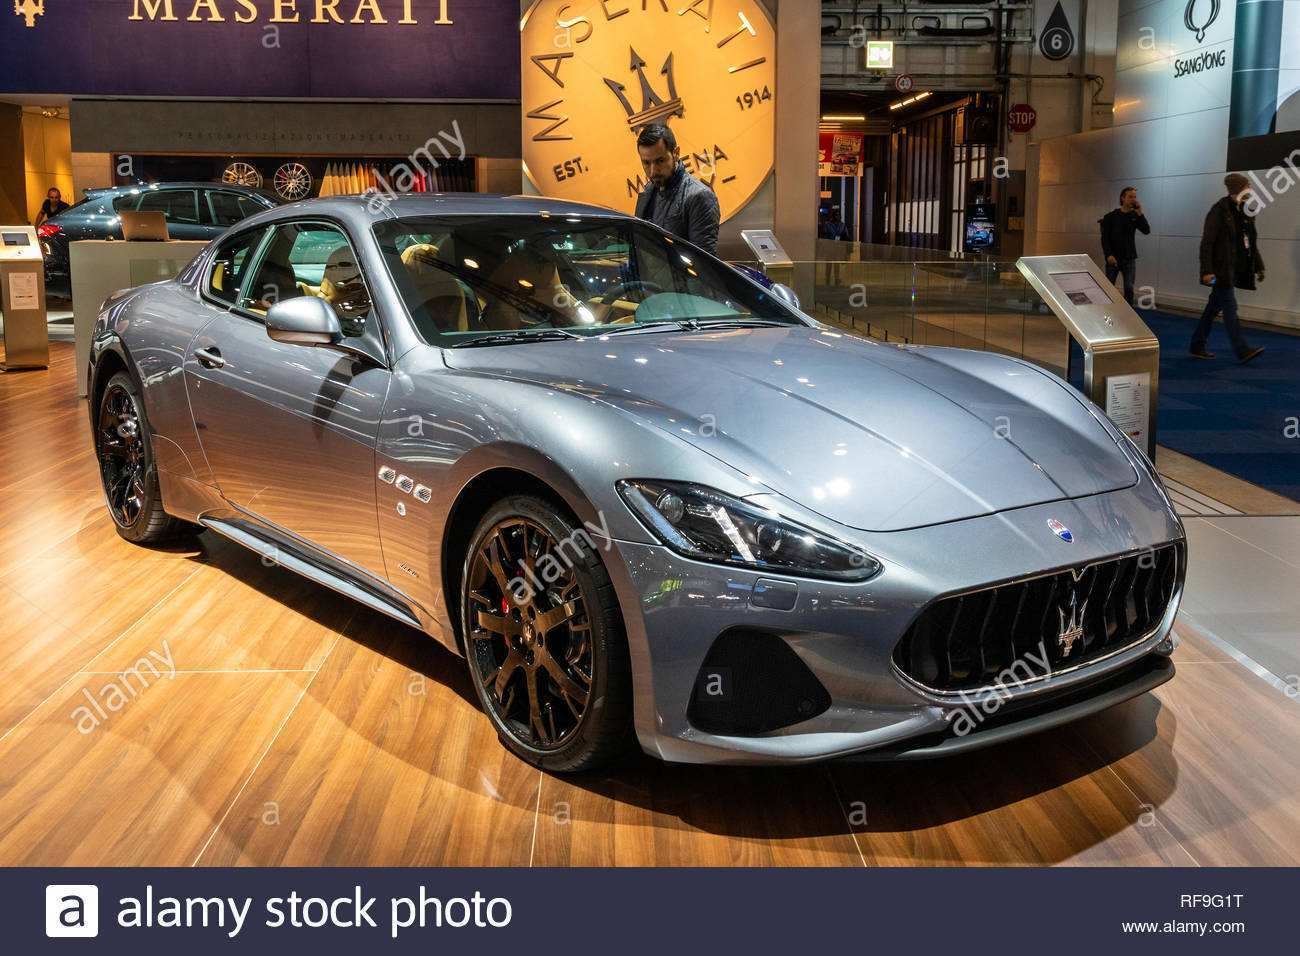 99 The 2019 Maserati Granturismo Review And Release Date